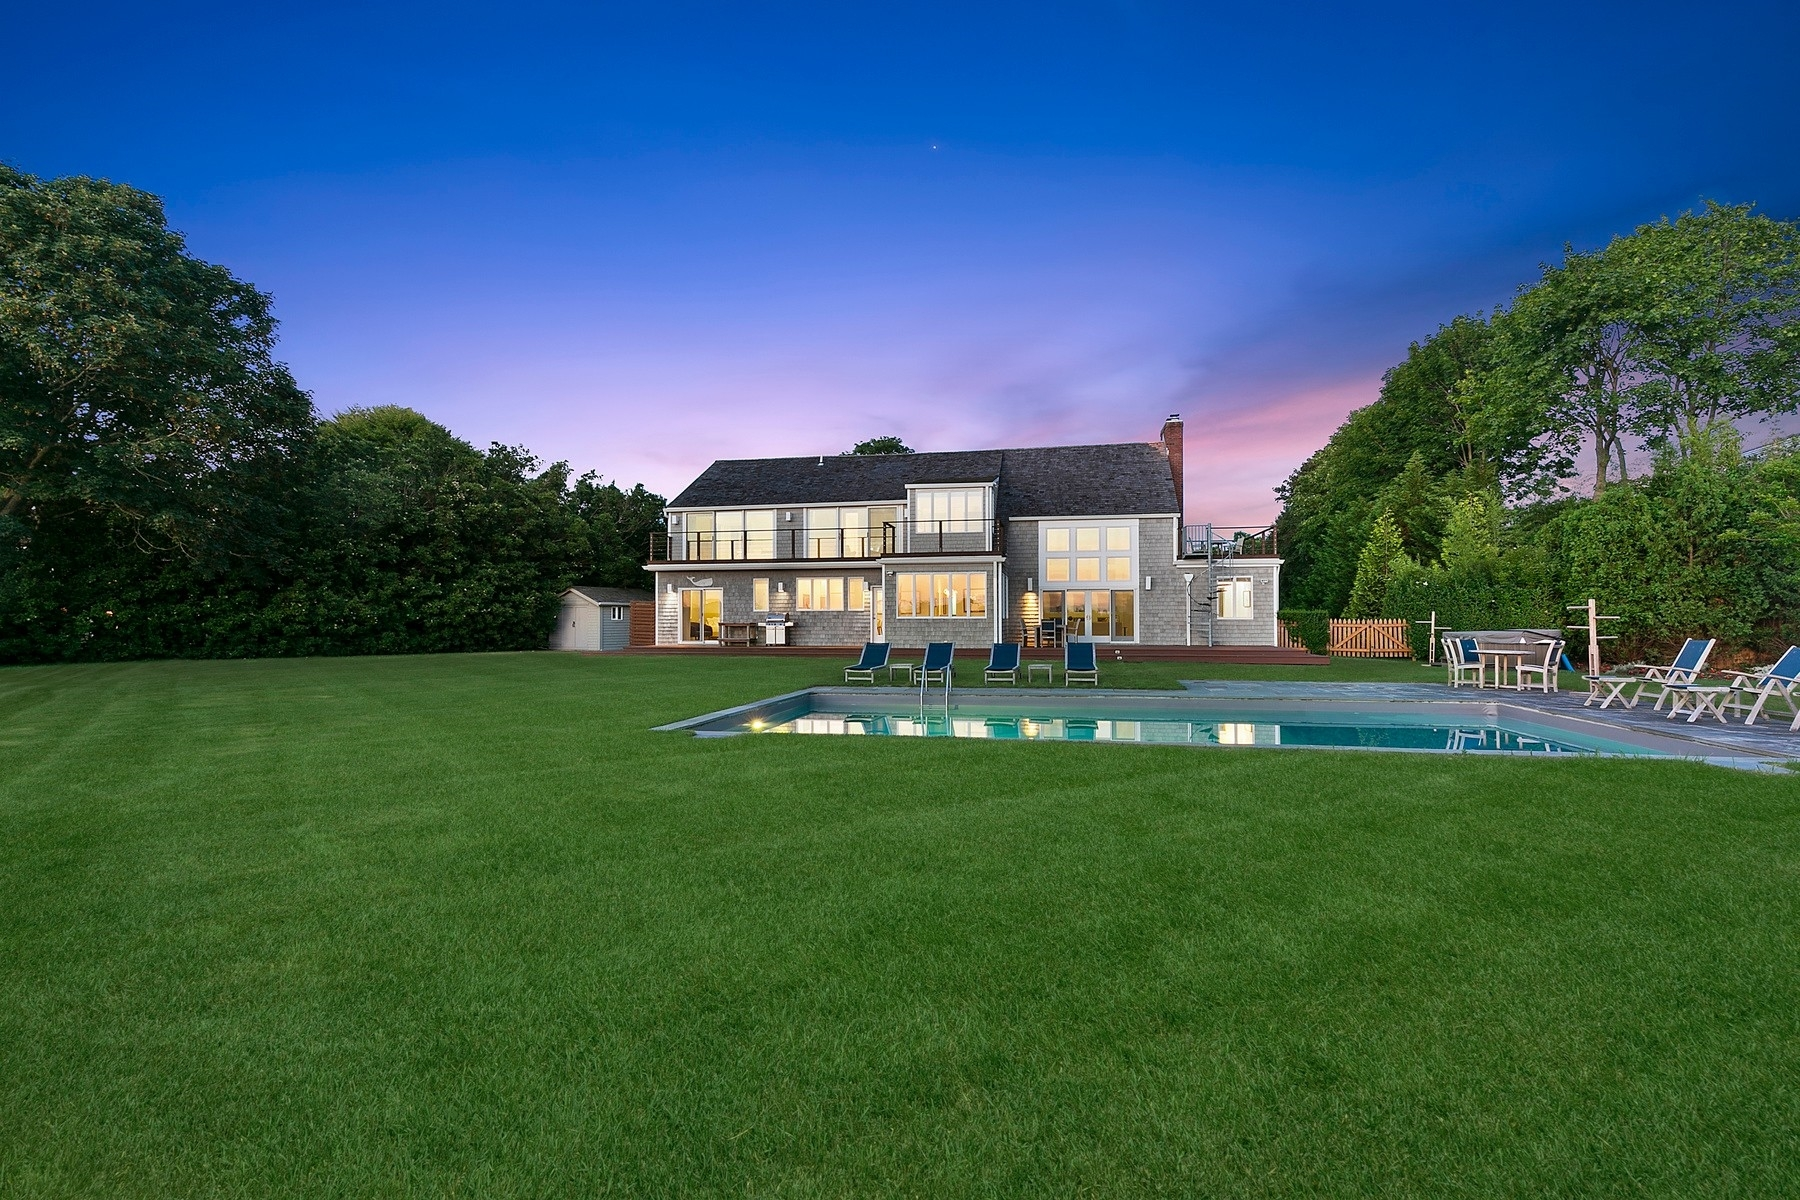 Property à Bridgehampton, NY 11932